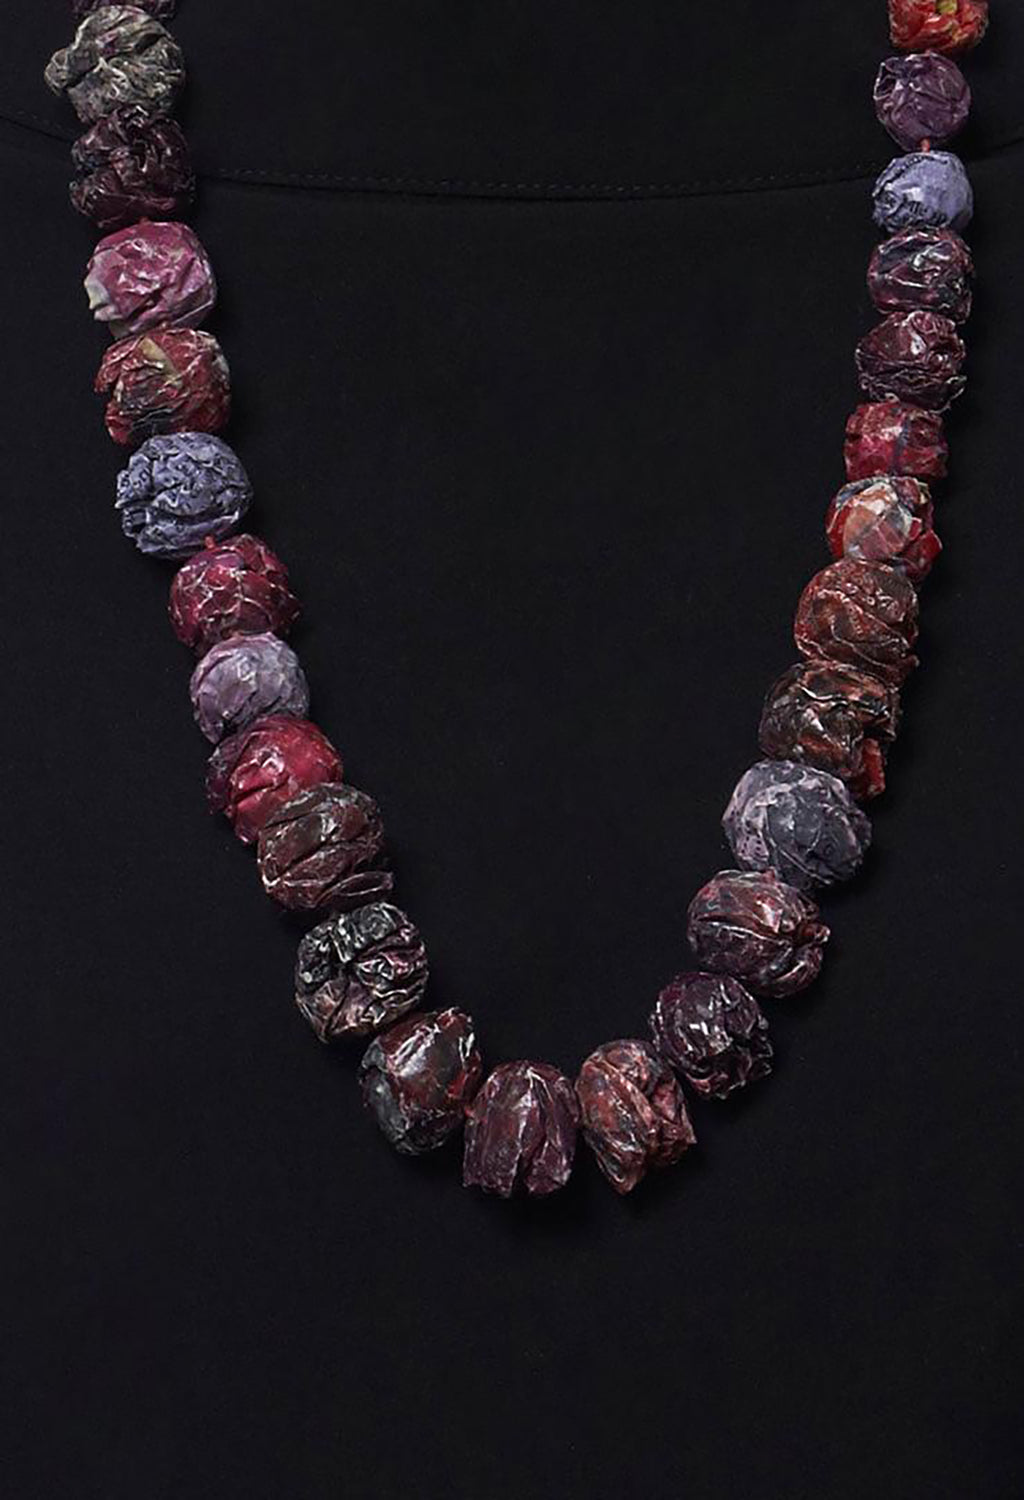 Paper Mache Beaded Necklace in Red Passion